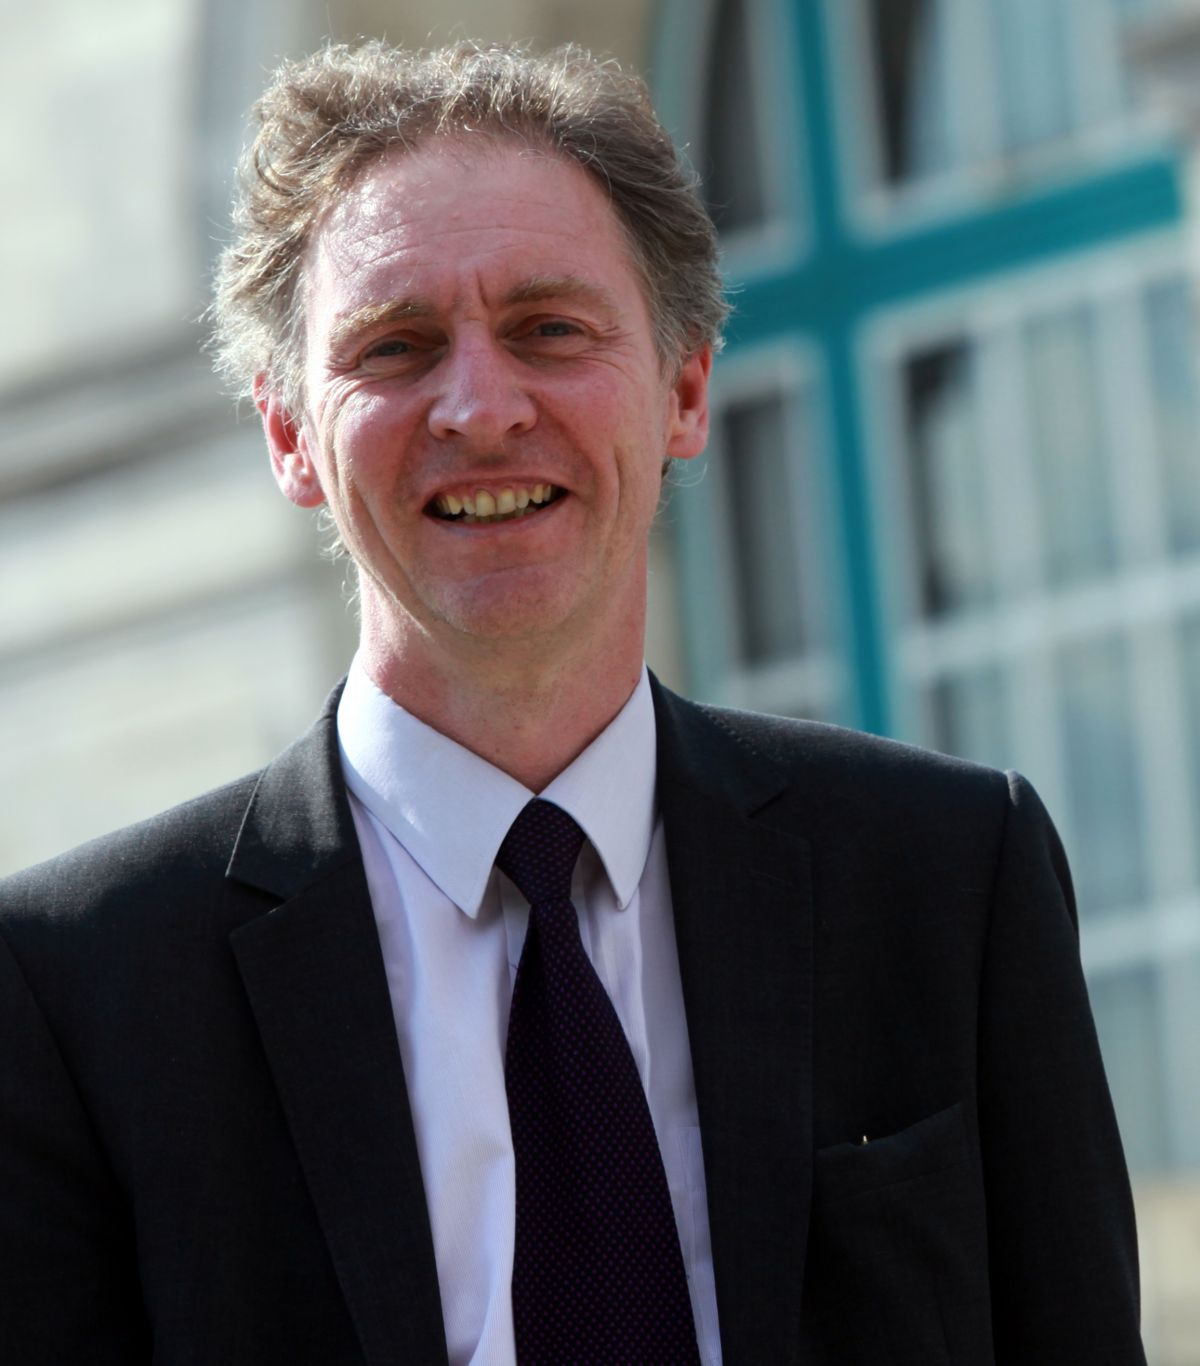 Southampton City Council leader Simon Letts